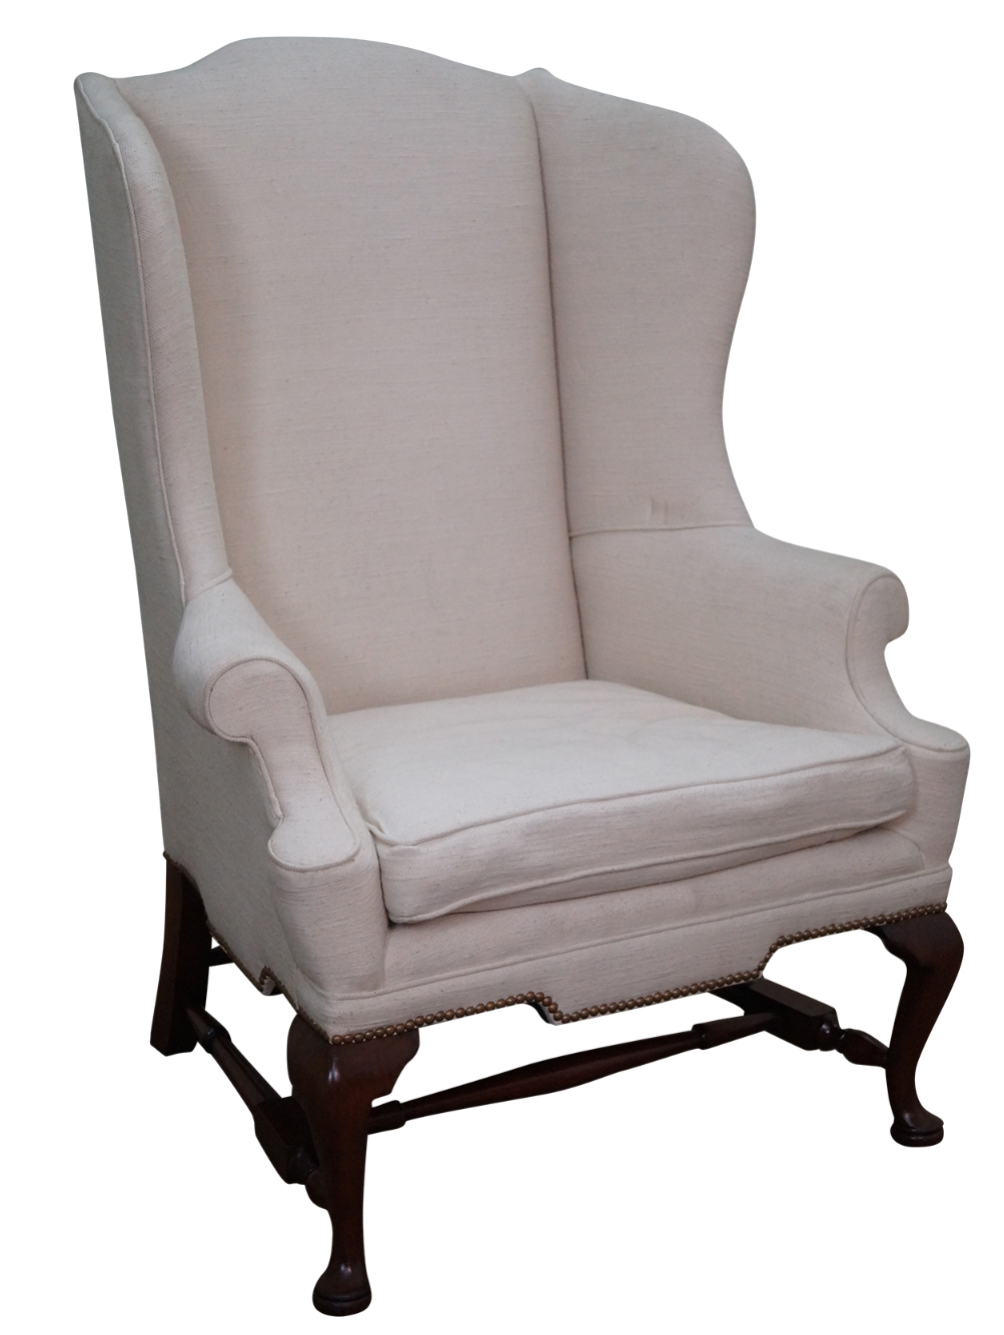 Charmant Biggs Kittinger Mahogany Queen Anne Wing Chair